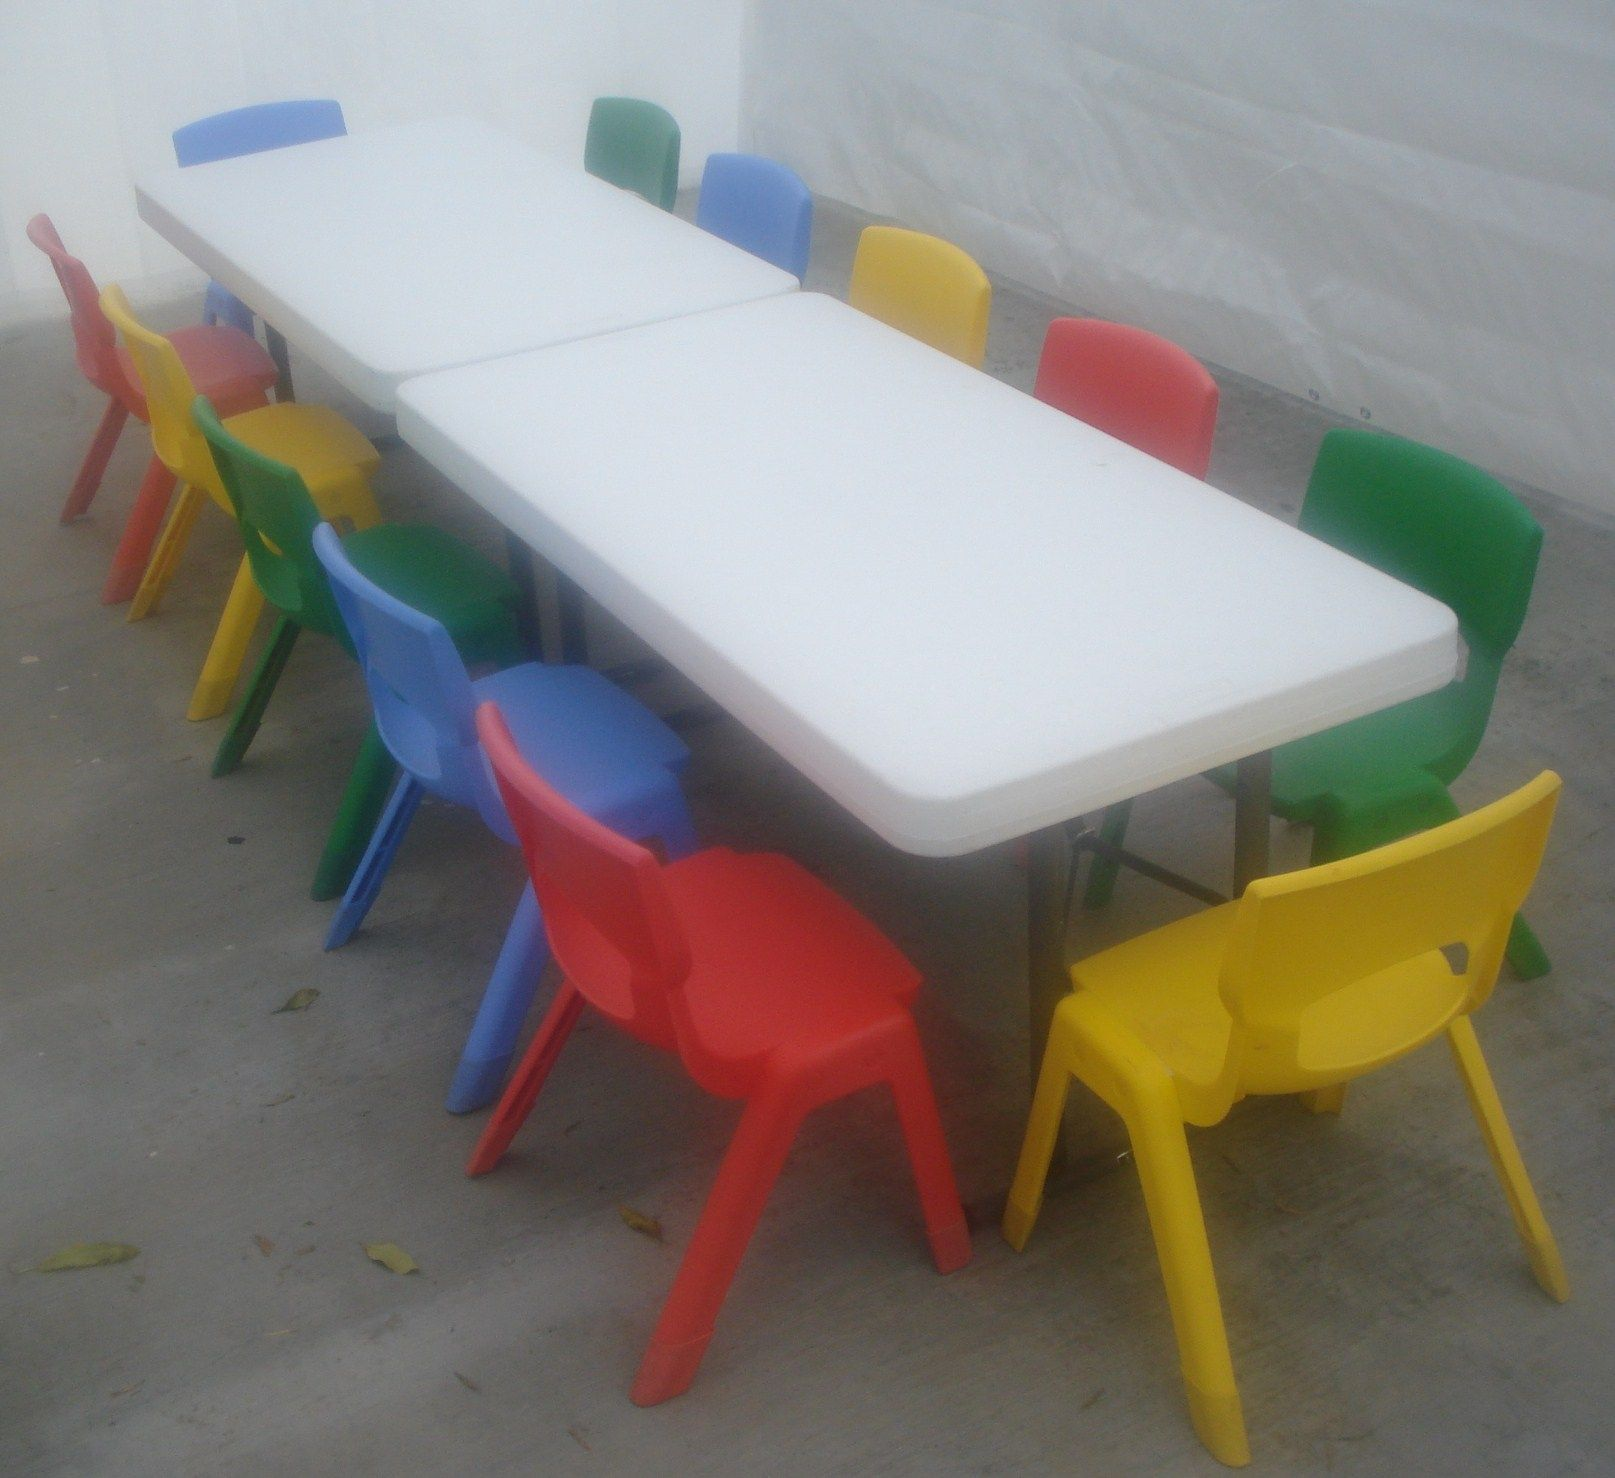 kings fun house jumpers party rentals kids tables. Black Bedroom Furniture Sets. Home Design Ideas